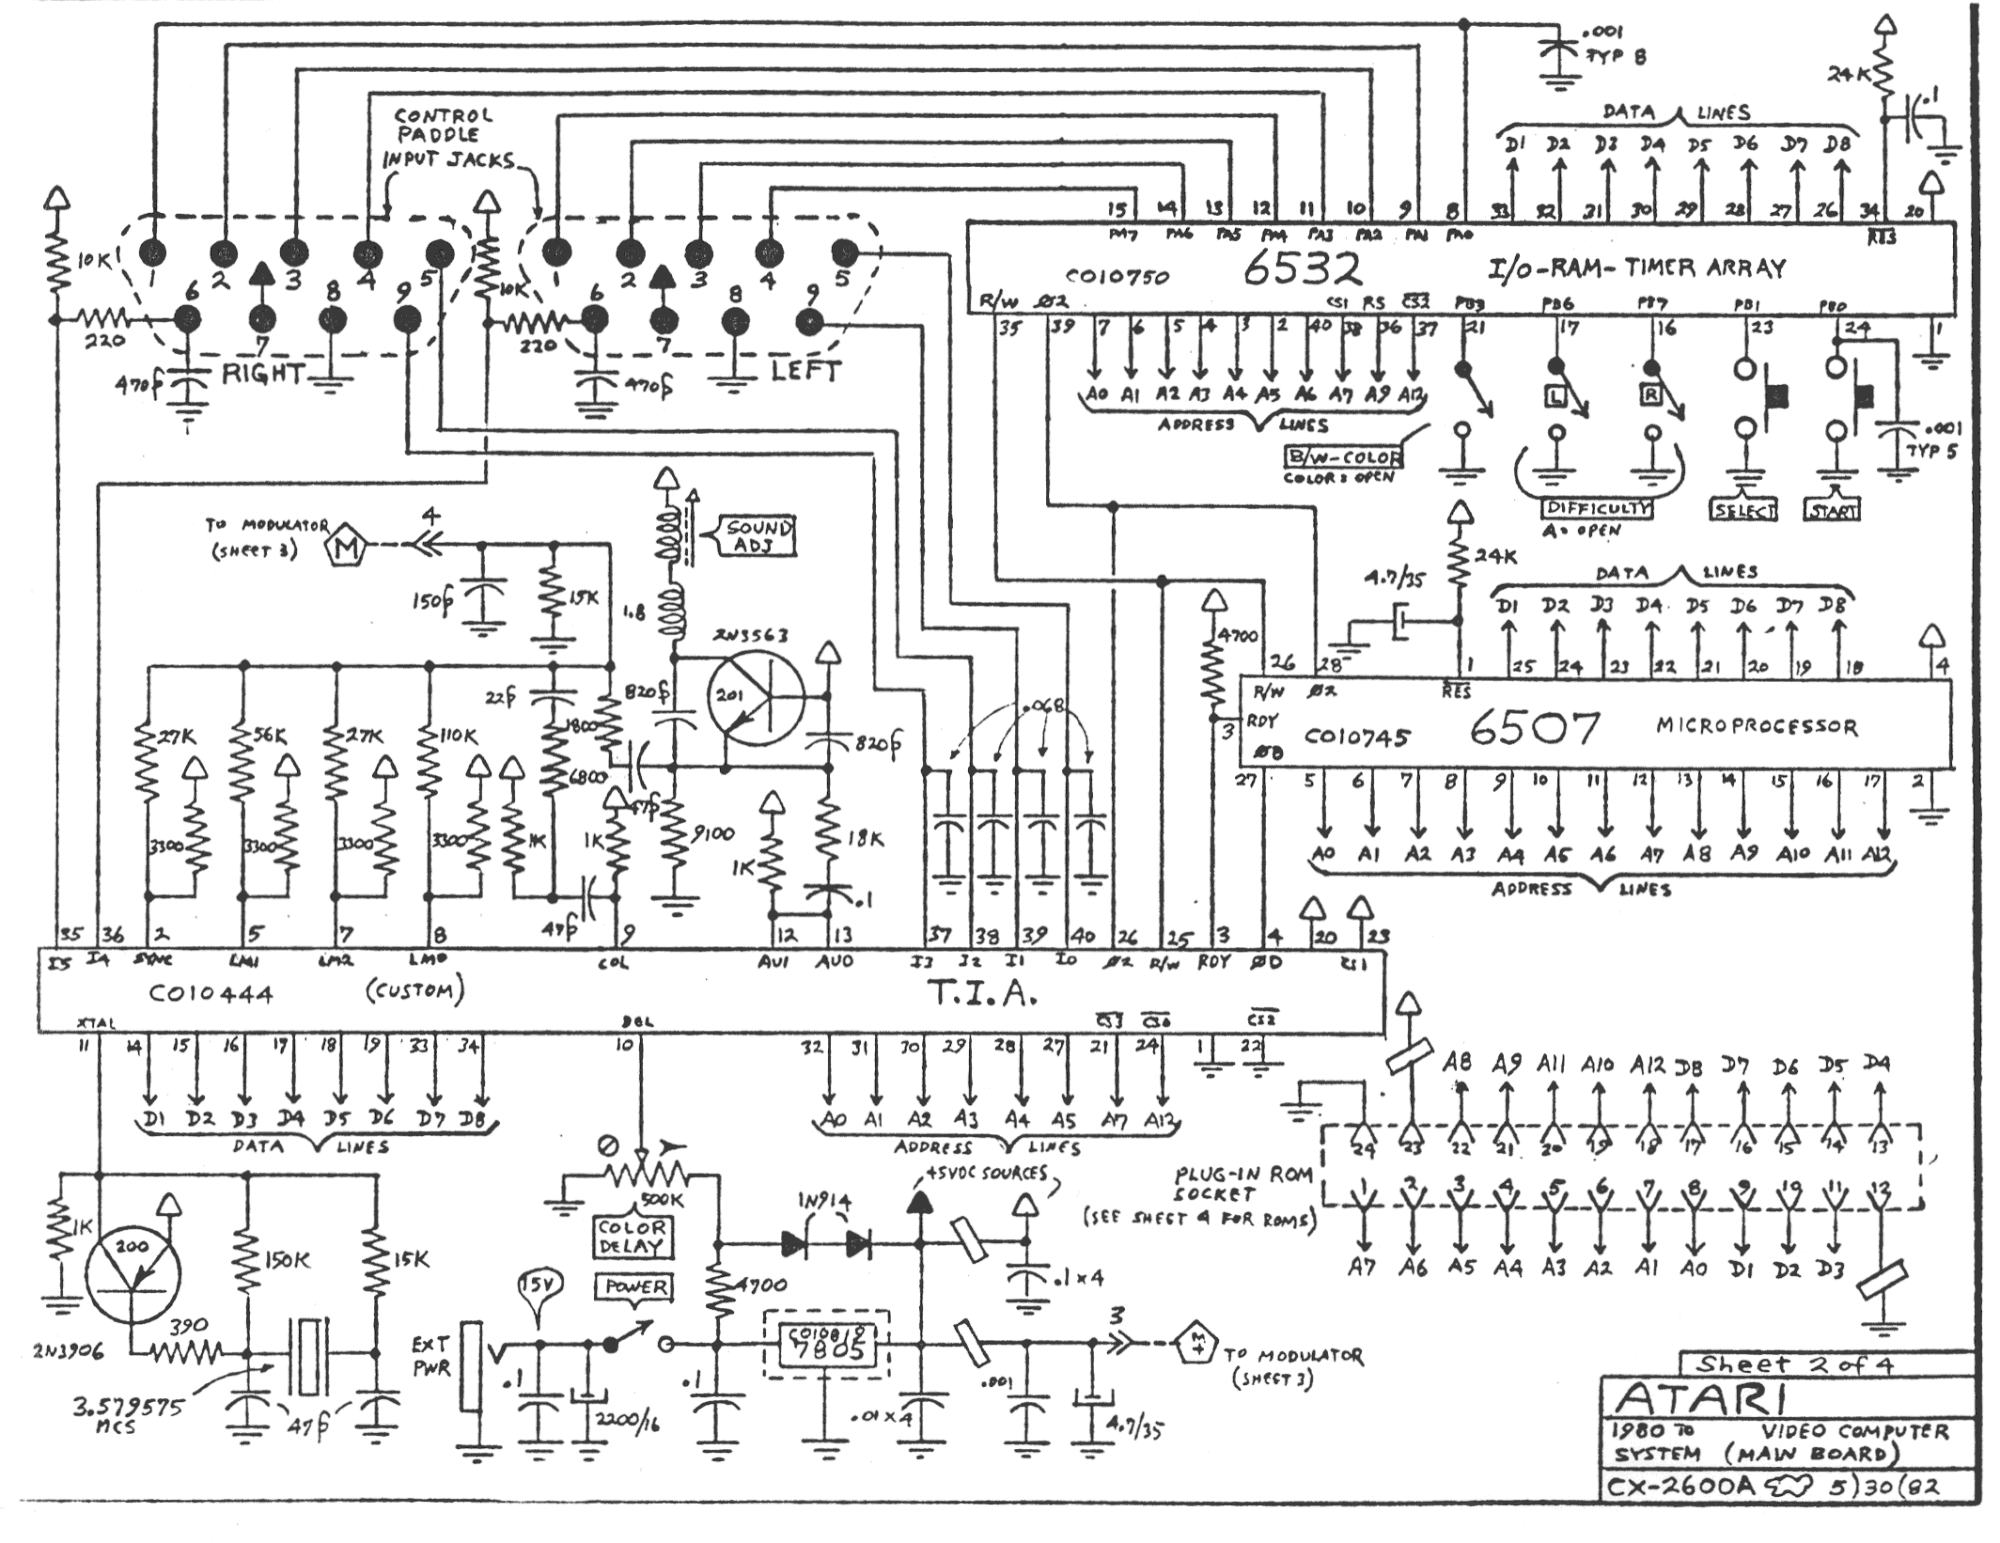 Schematic_Atari2600A_2000 atari 2600 wiring diagram wiring diagrams Atari 2600 System at mifinder.co